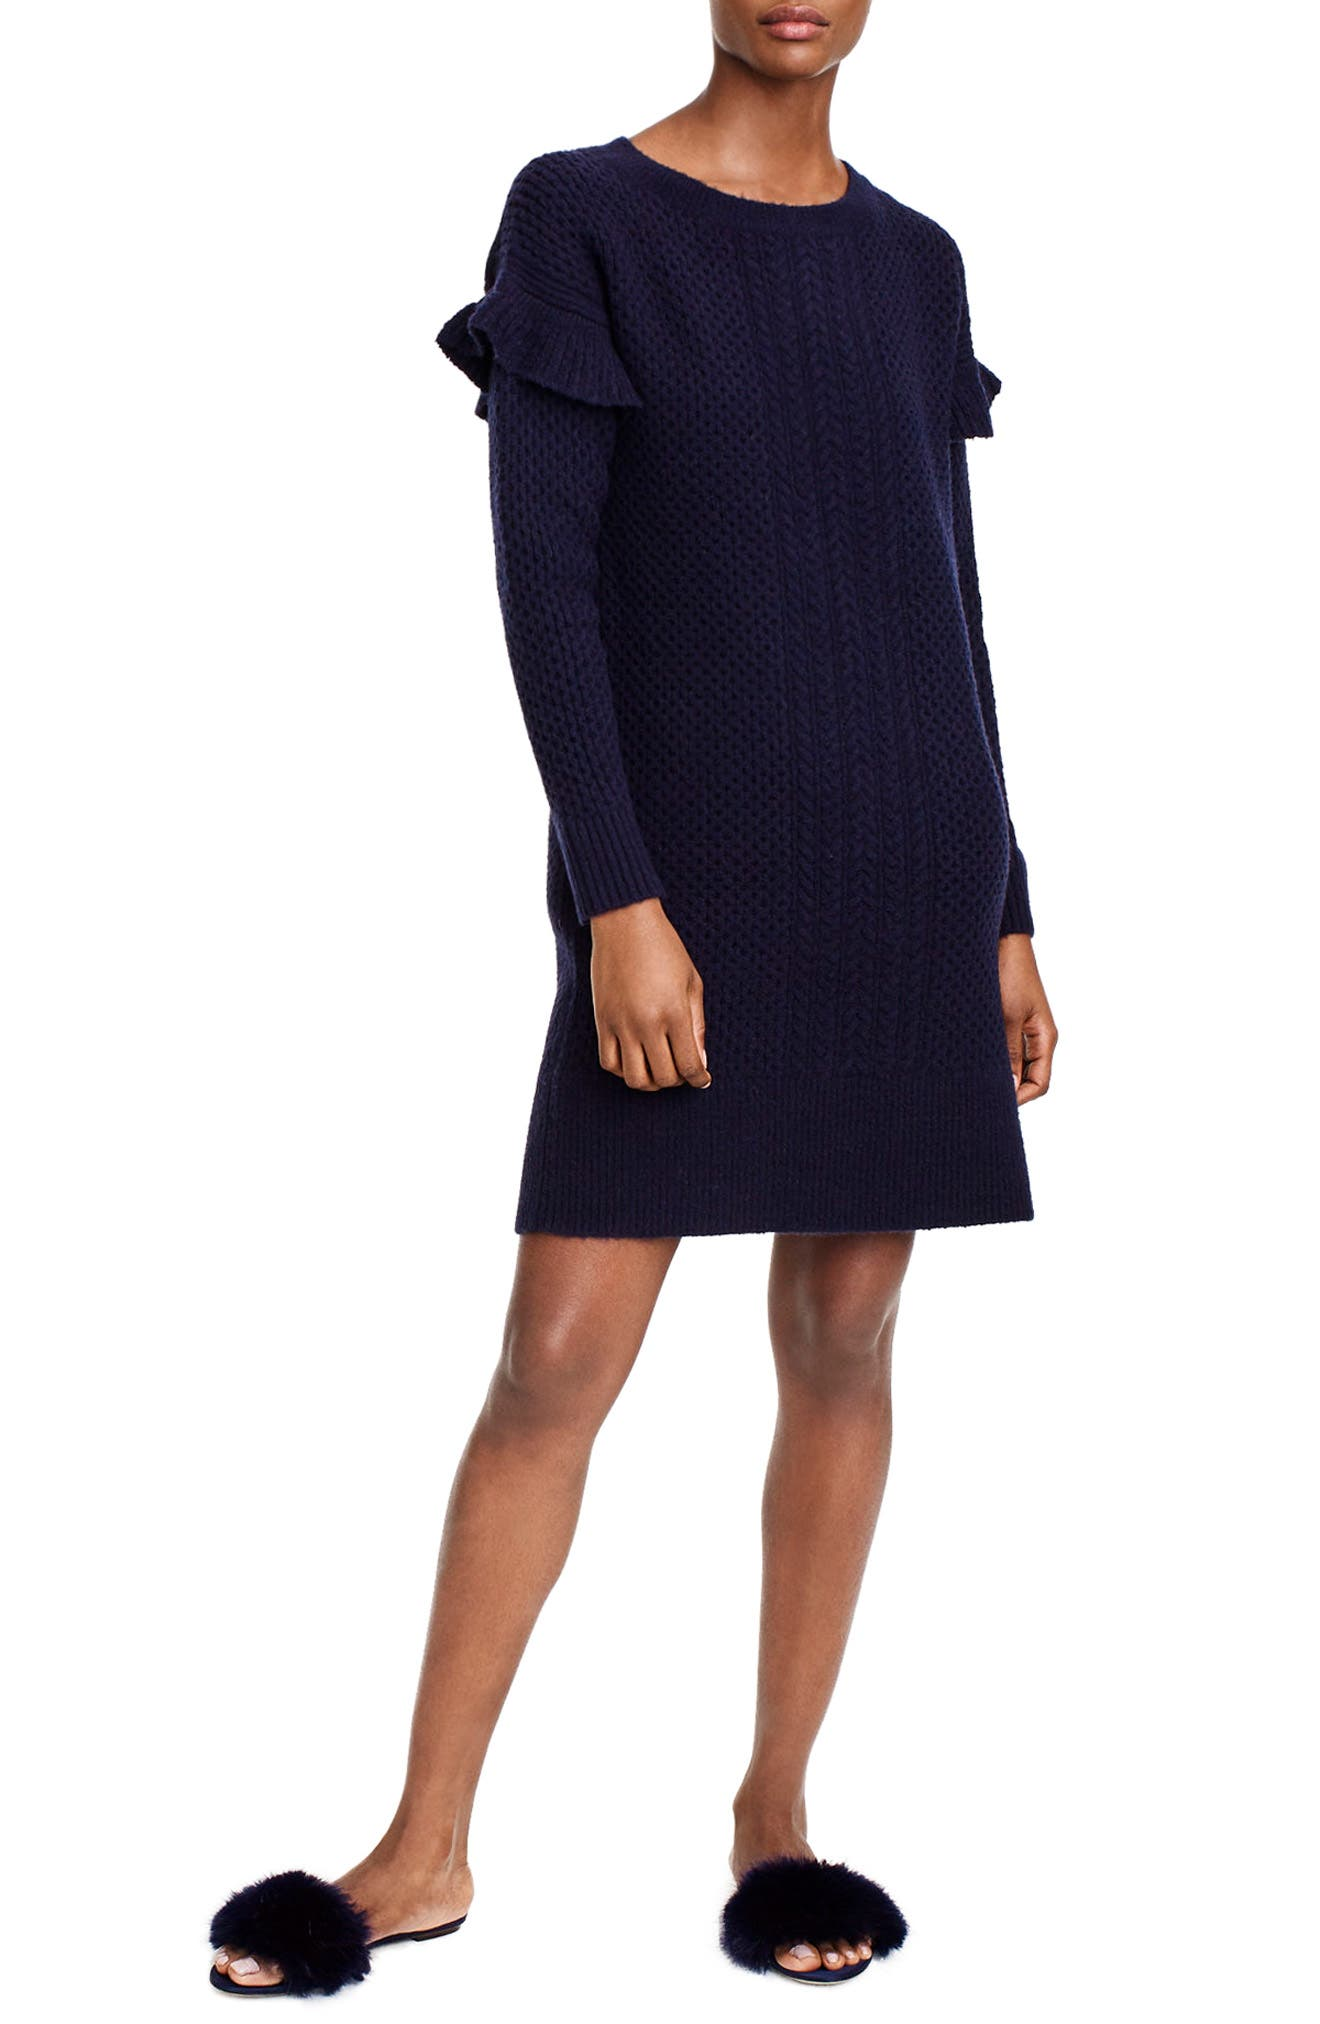 Holden Ruffle Sleeve Cable Knit Sweater Dress,                             Main thumbnail 1, color,                             400